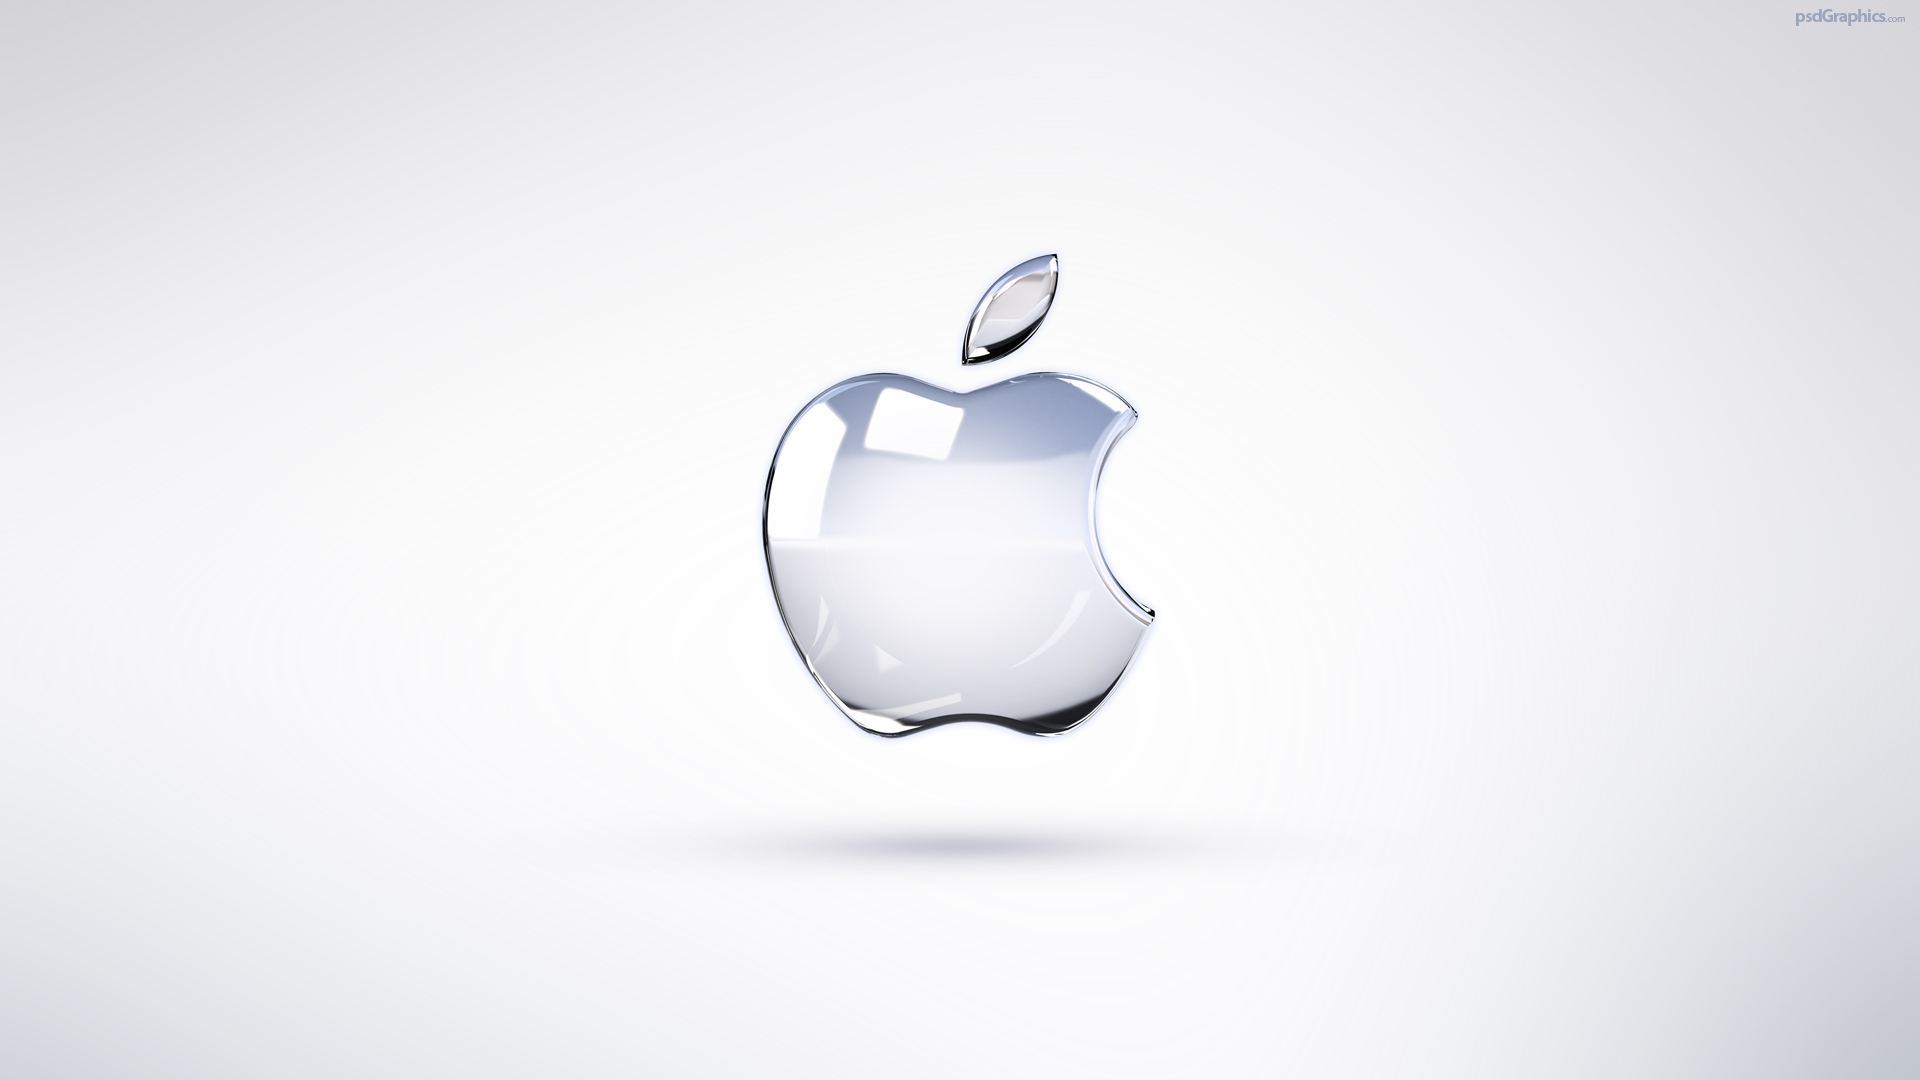 Free HD Apple Wallpaper